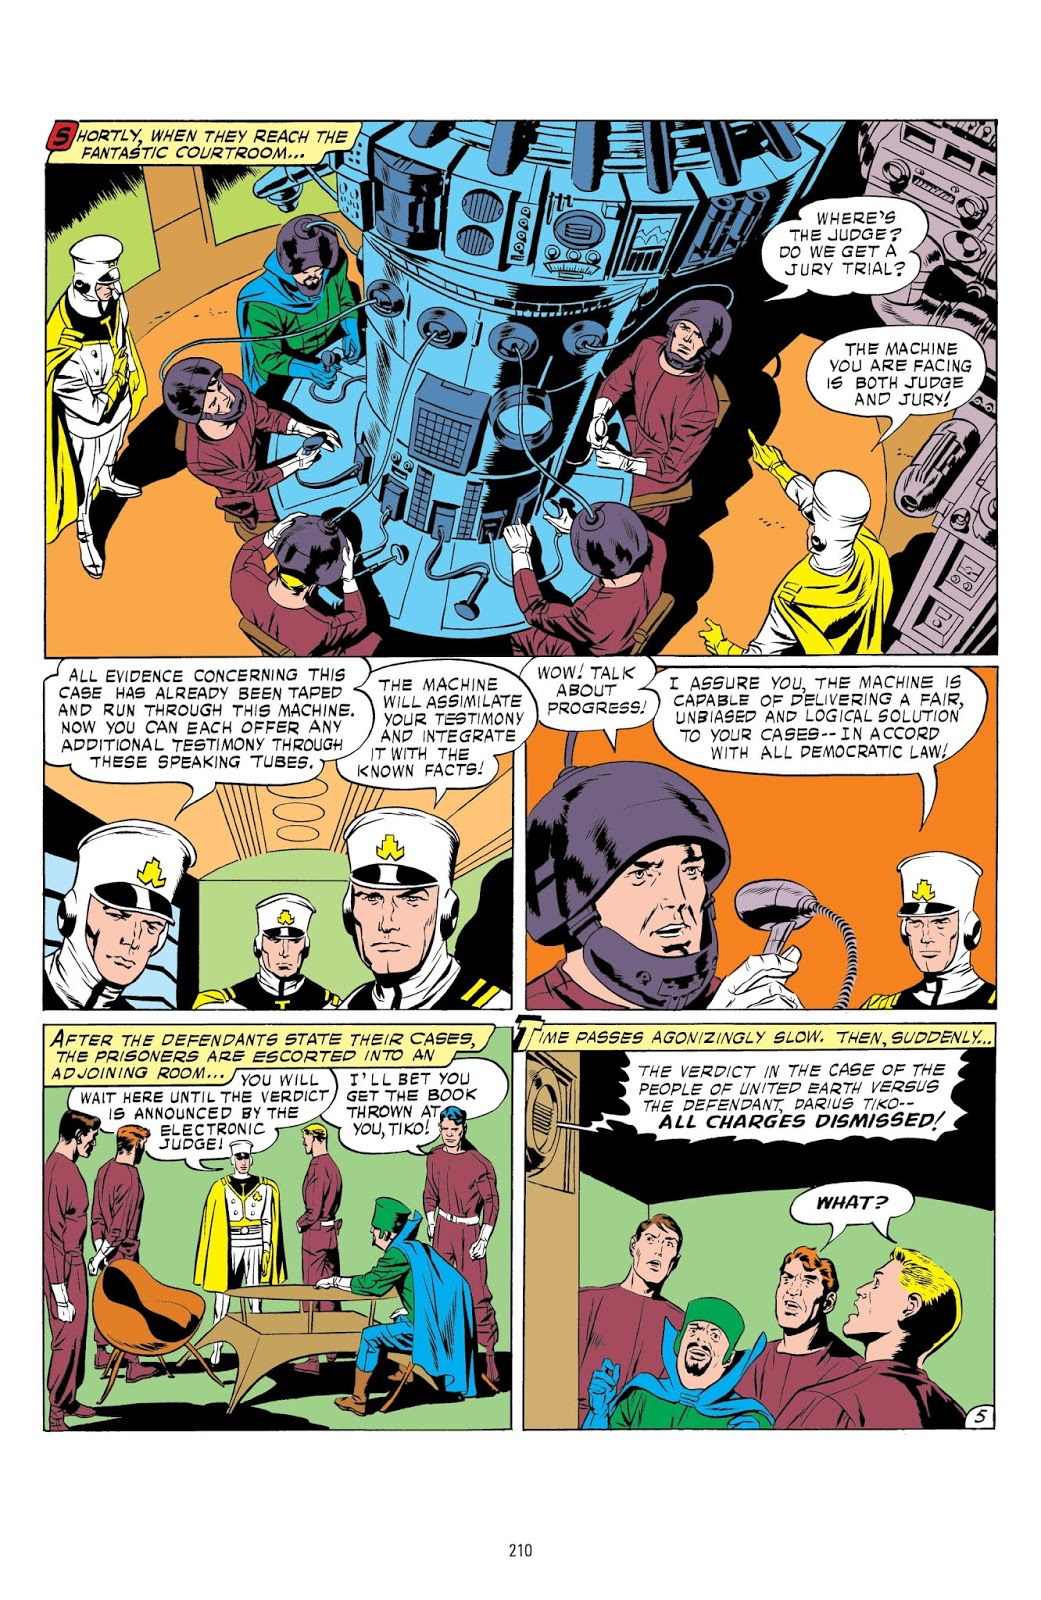 Challengers of the Unknown by Jack Kirby review